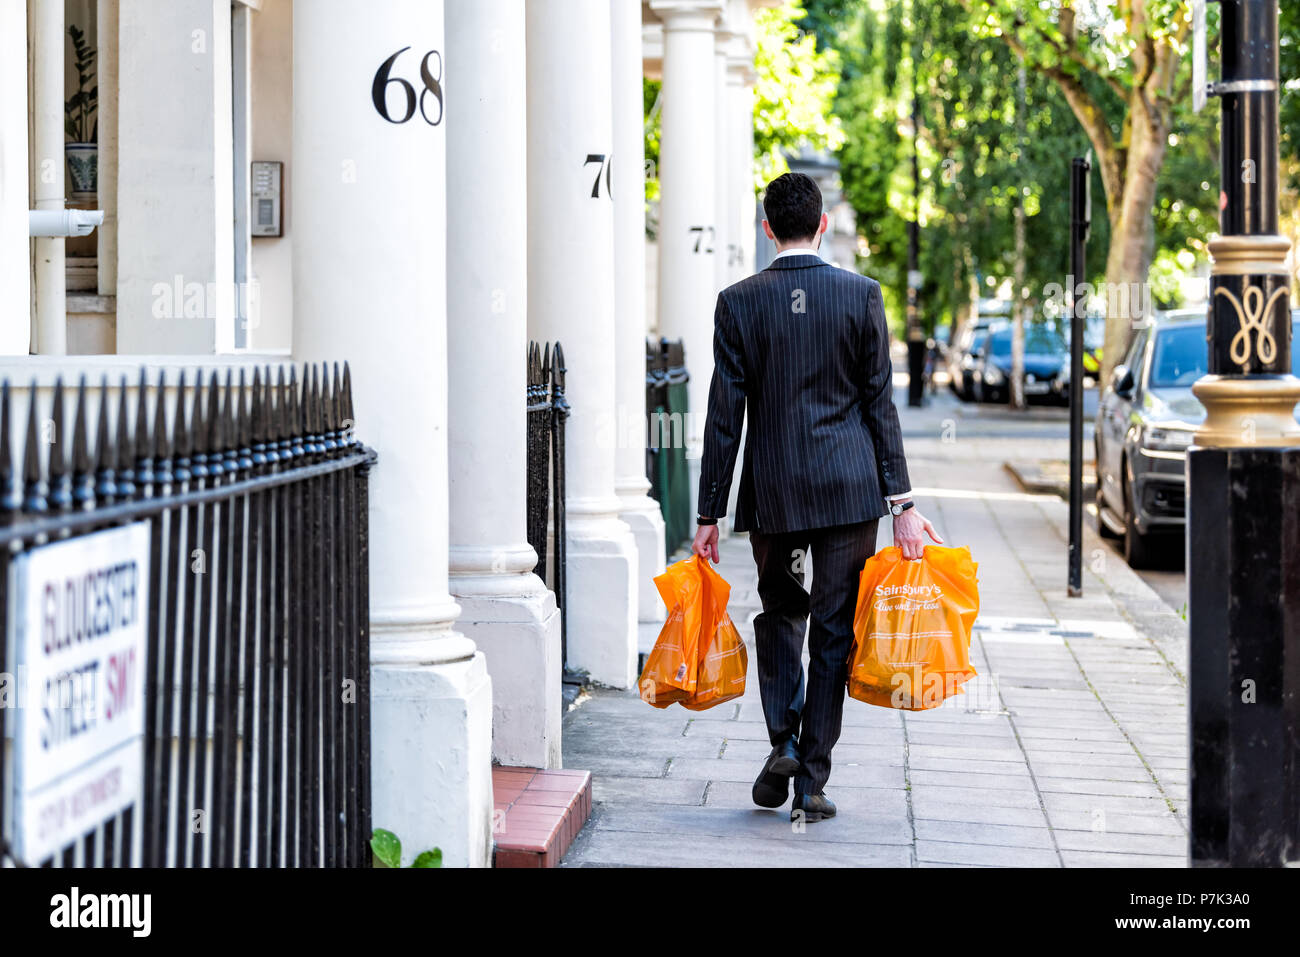 London, UK - June 22, 2018: Neighborhood district of Pimlico, Gloucester Street, businessman man carrying grocery shopping bags after work in evening  - Stock Image